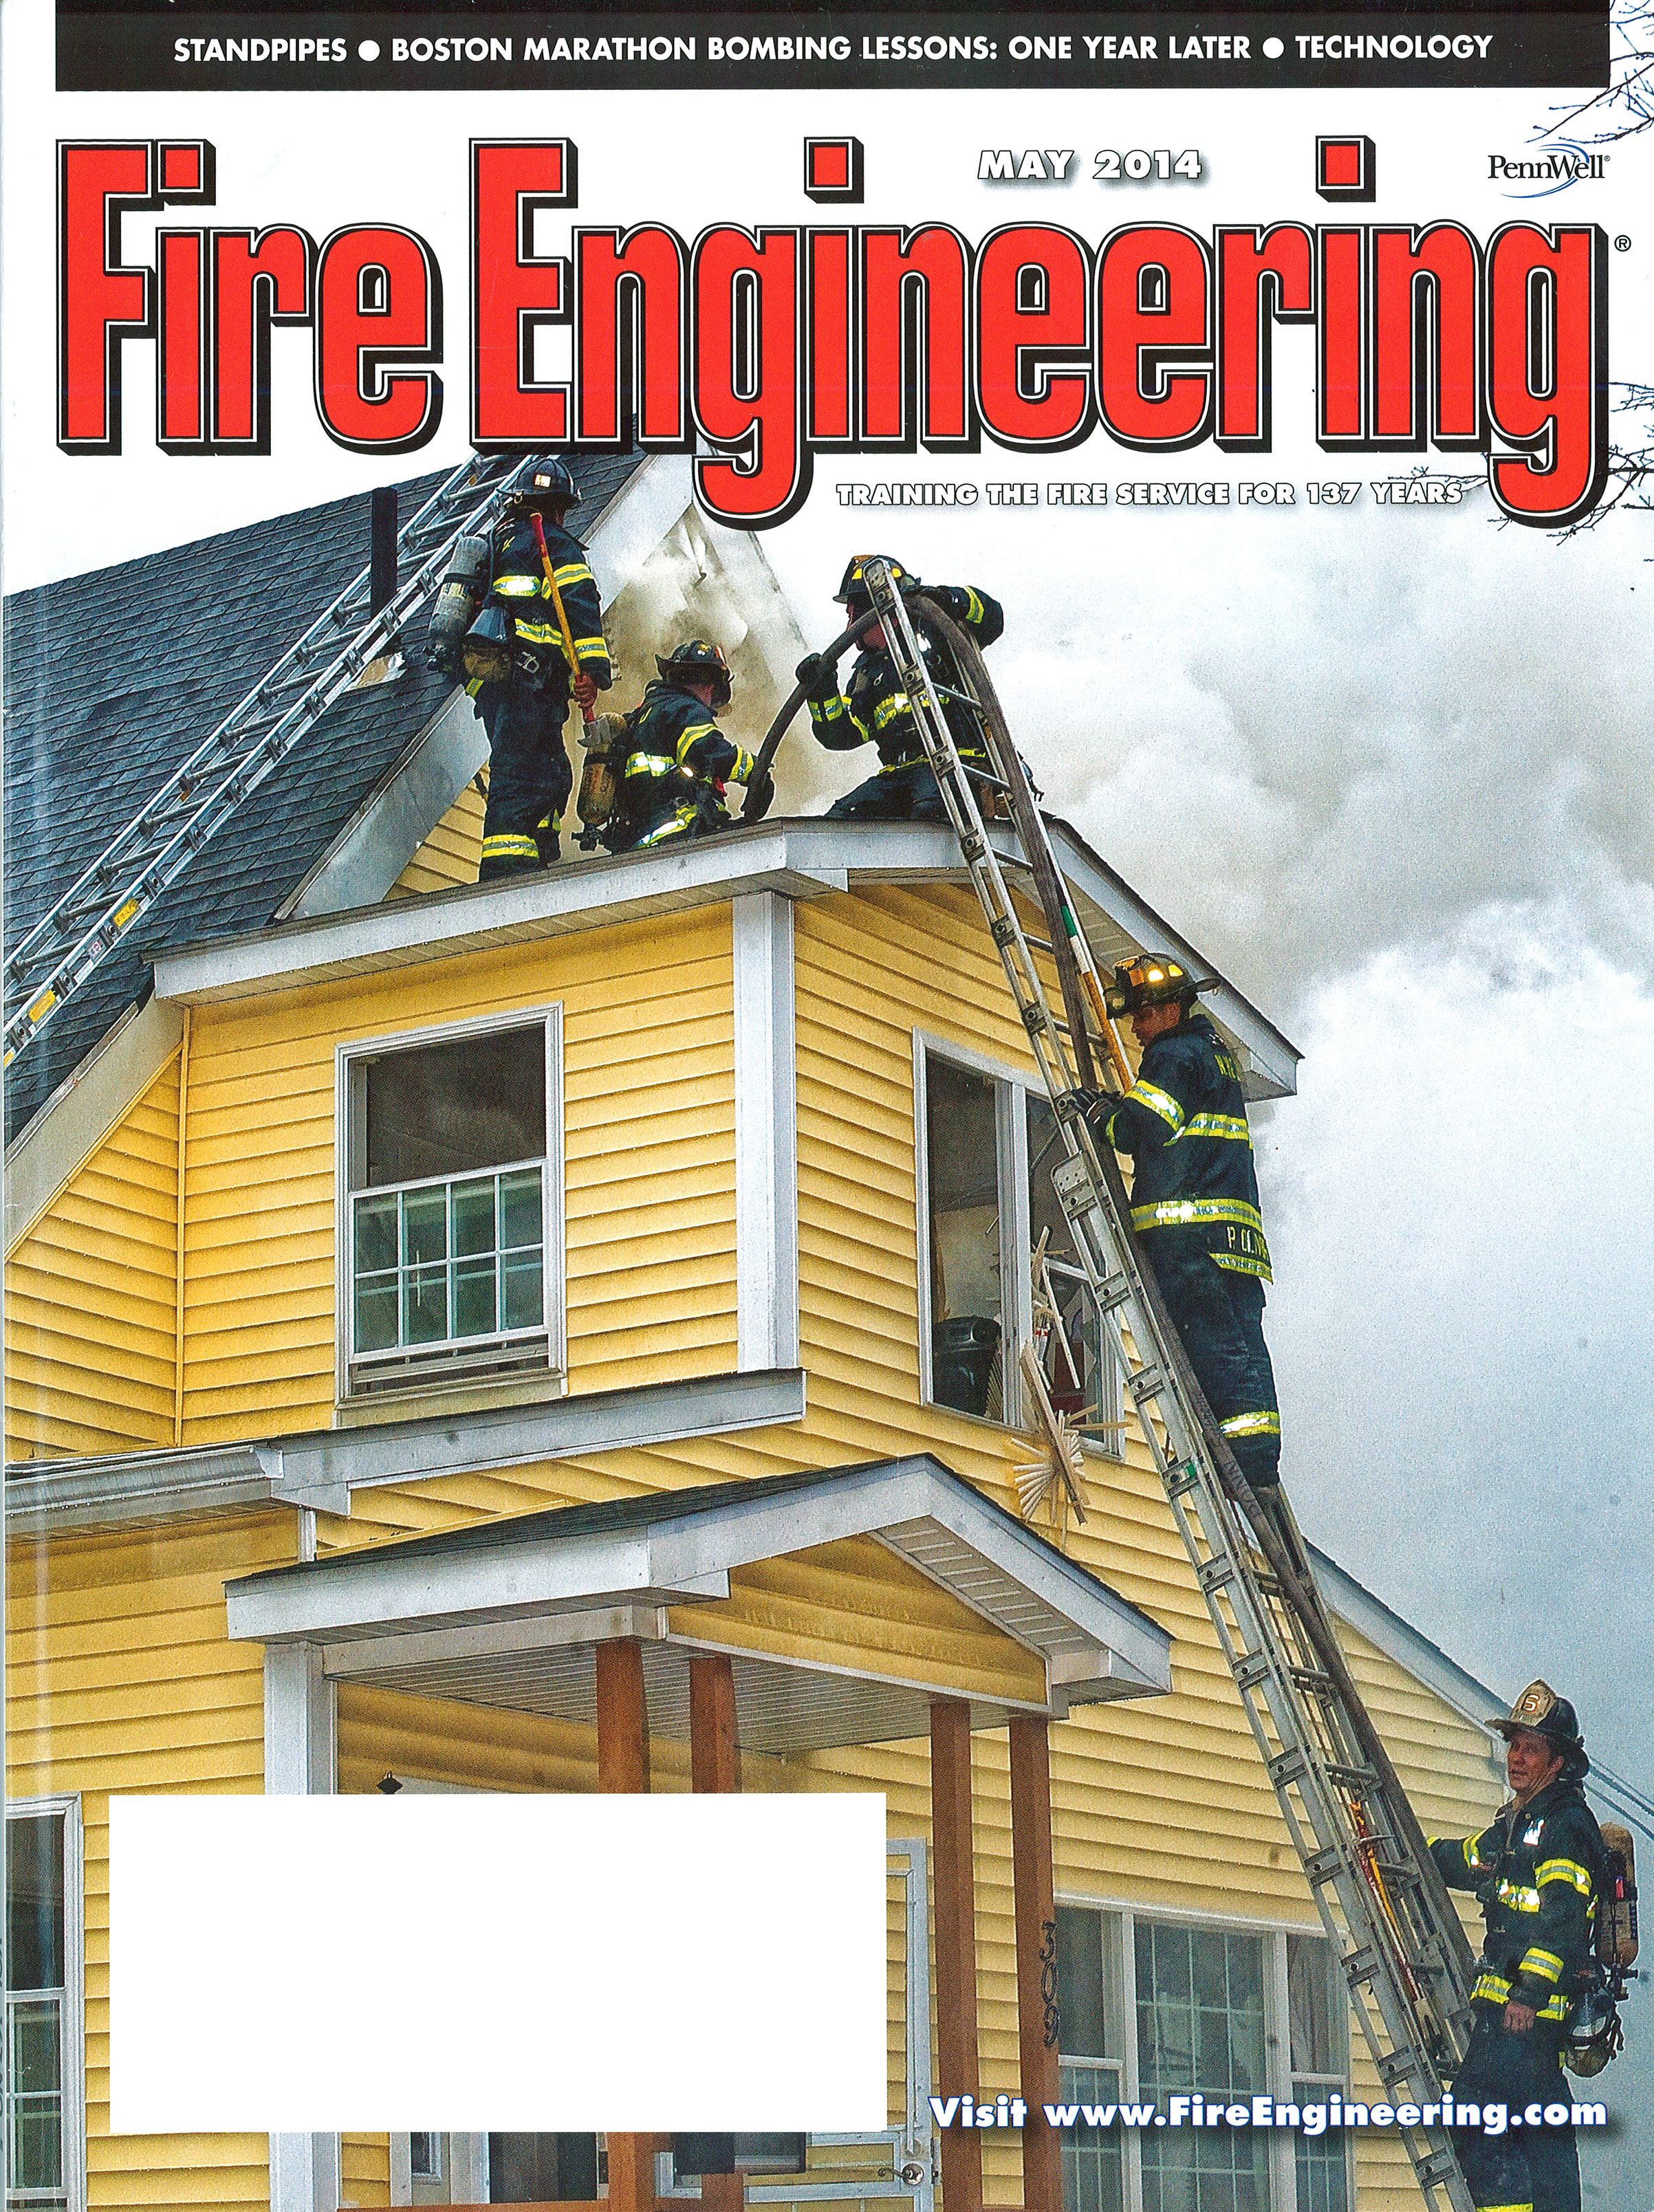 Fire Engineering Magazine Partners with Russell Johns to